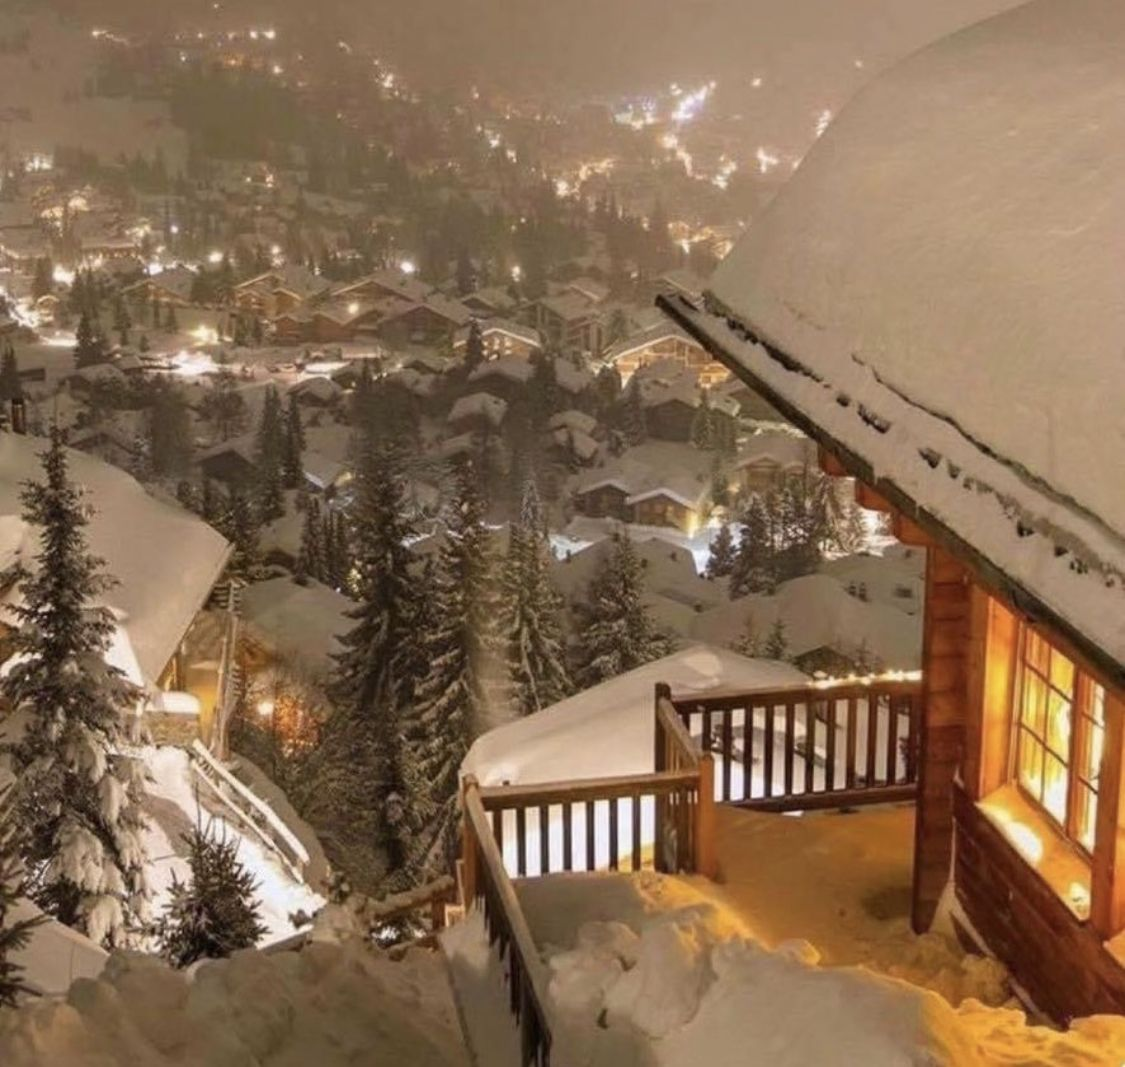 Pin By Shiloh Smero On Winter Wonderland In 2020 Dream Holiday Beautiful World Beautiful Places